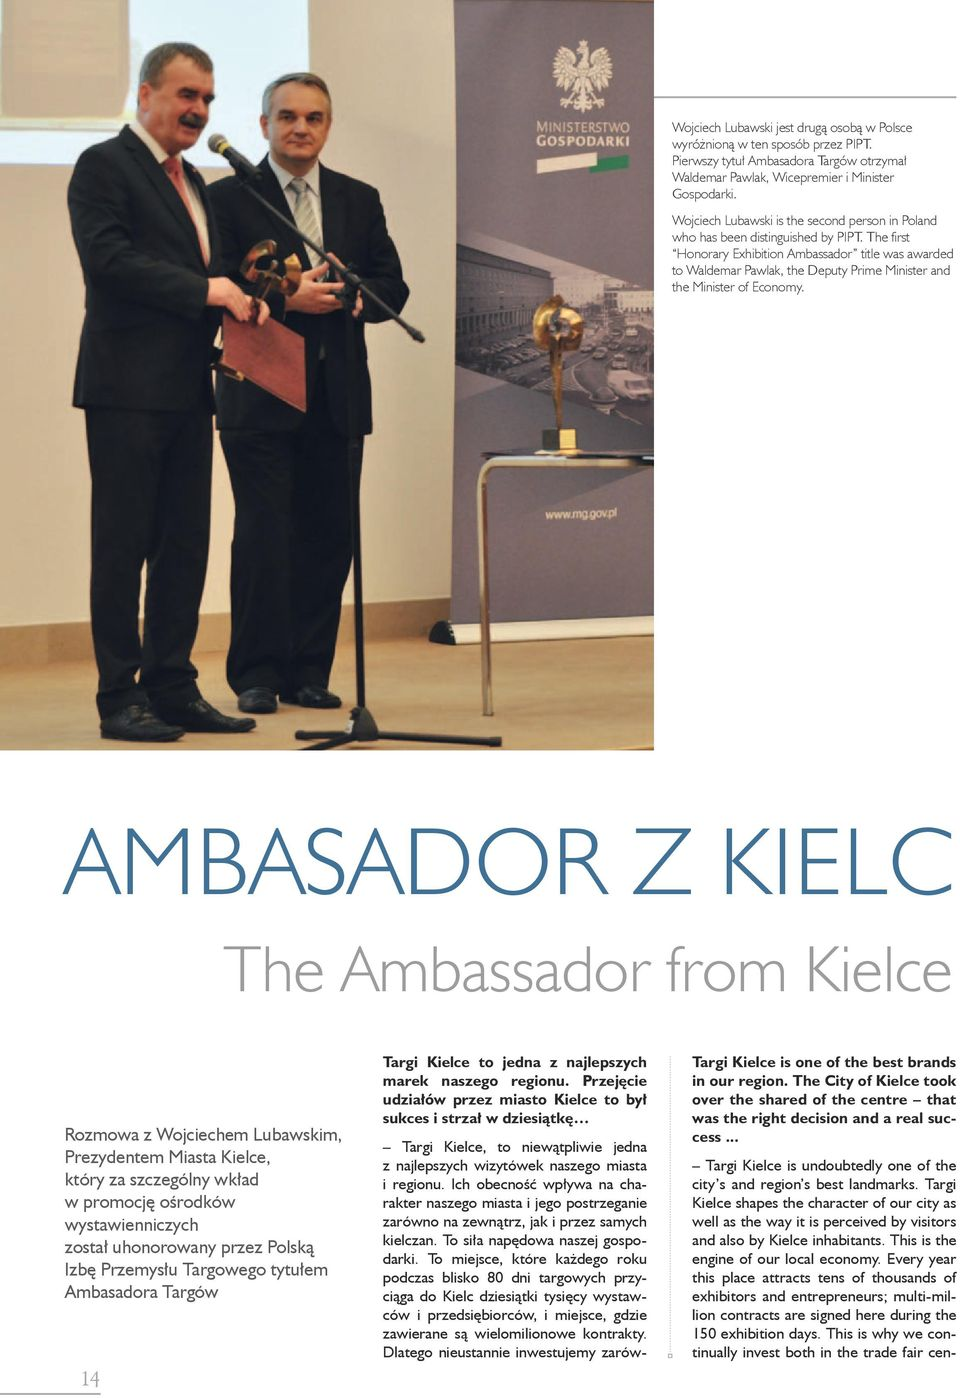 The first Honorary Exhibition Ambassador title was awarded to Waldemar Pawlak, the Deputy Prime Minister and the Minister of Economy.